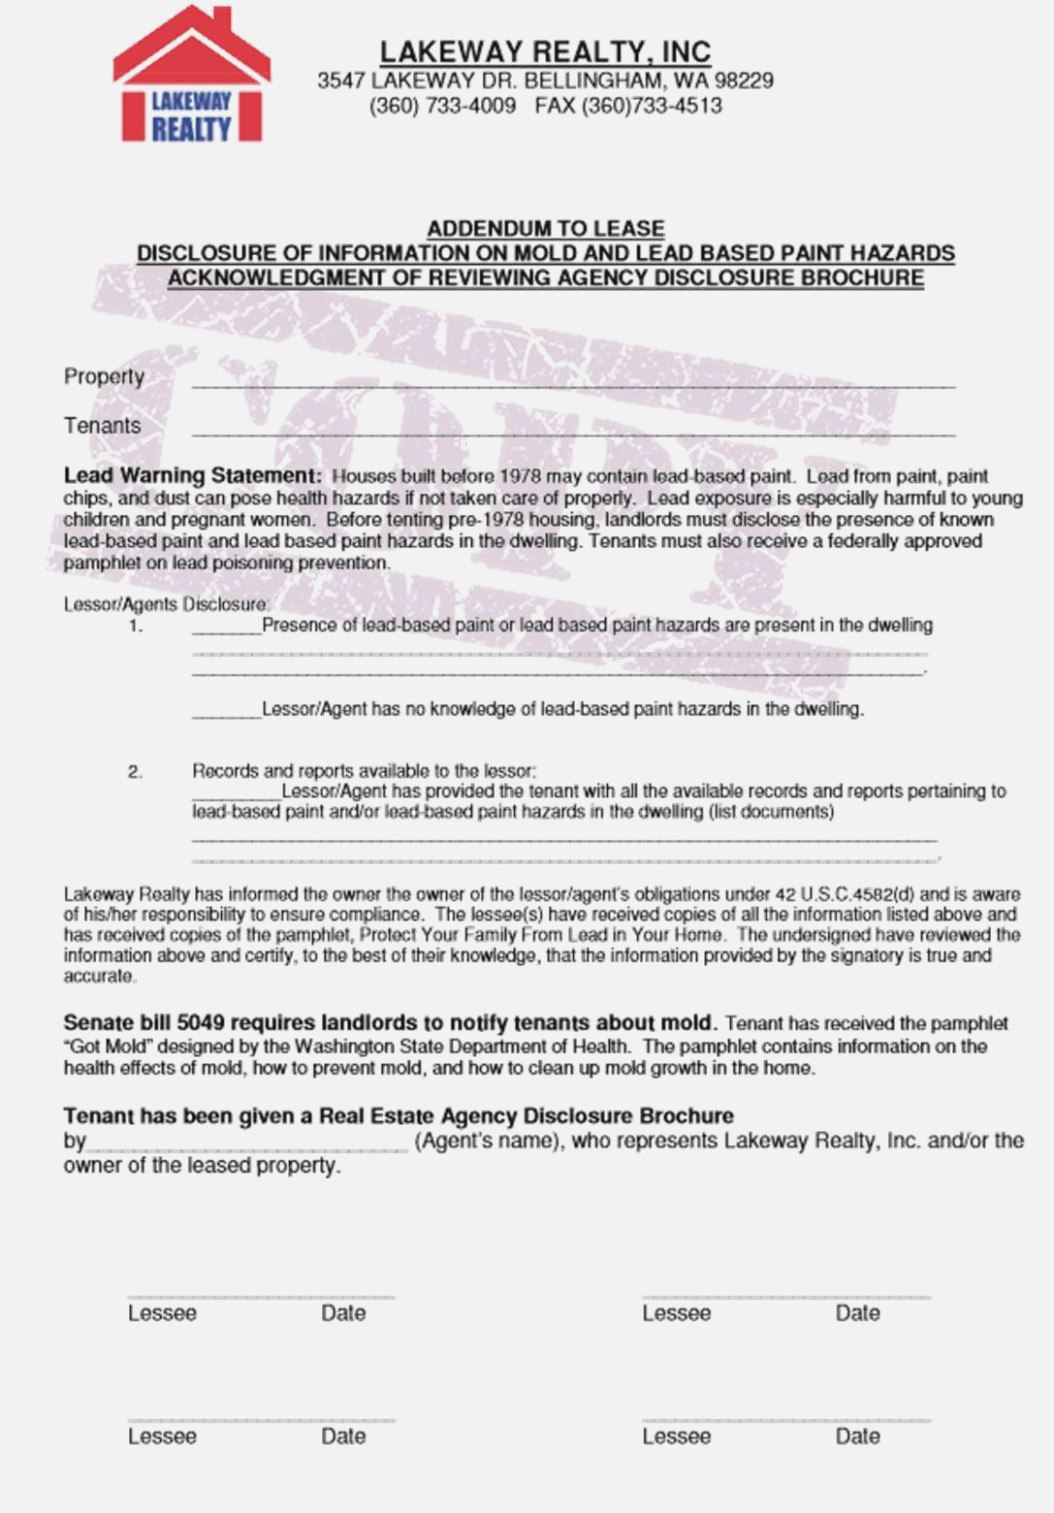 Receipt And Holding Deposit Agreement Template Stunning Form Pertaining To Holding Deposit Agreement Template